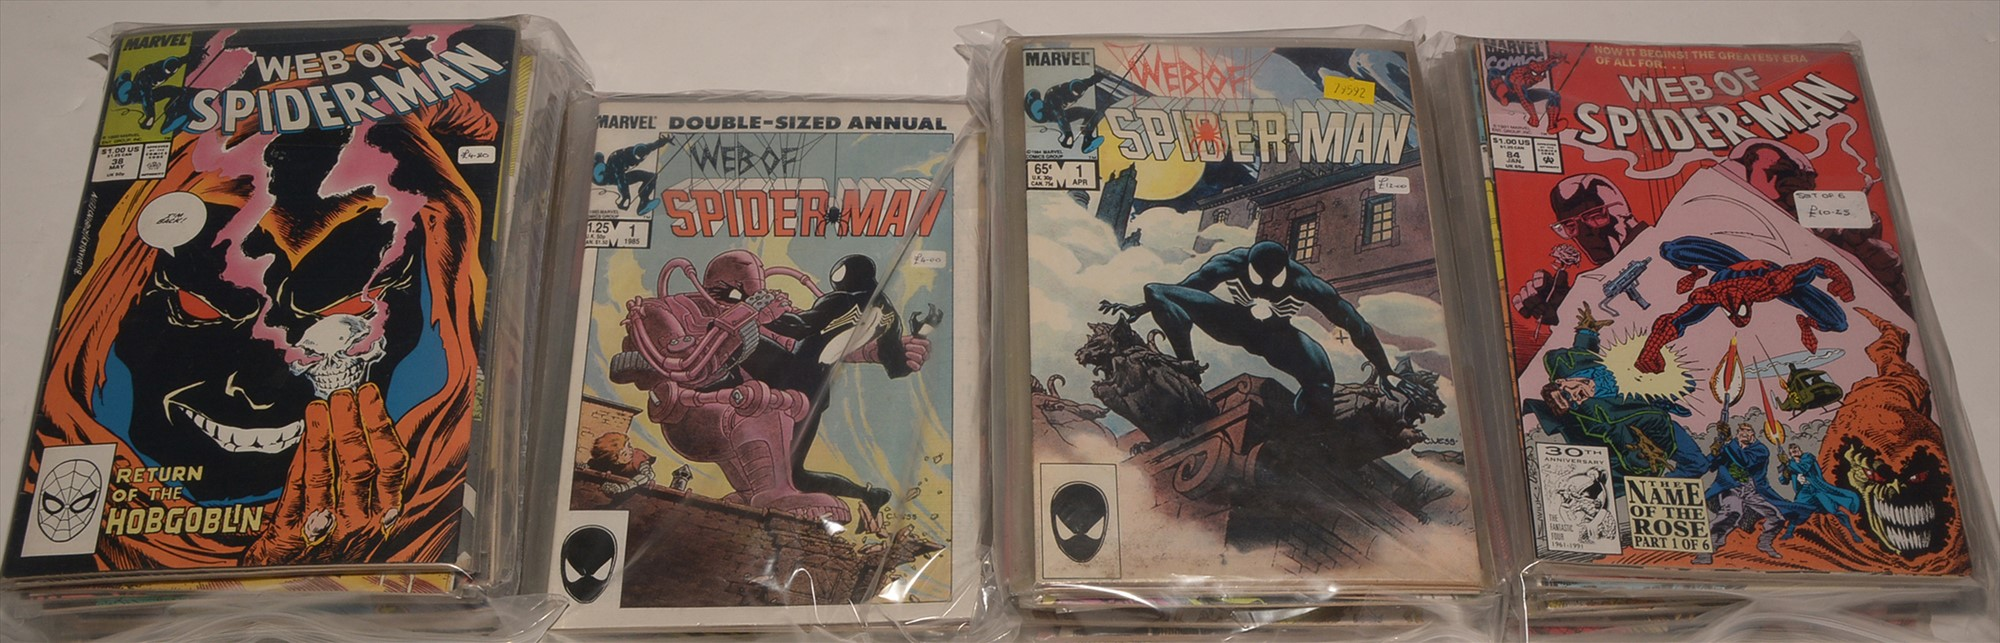 Web of Spider-Man No's. 1, 2, 3, 4, 6 and a large quantity of subsequent issues, highest number 125,